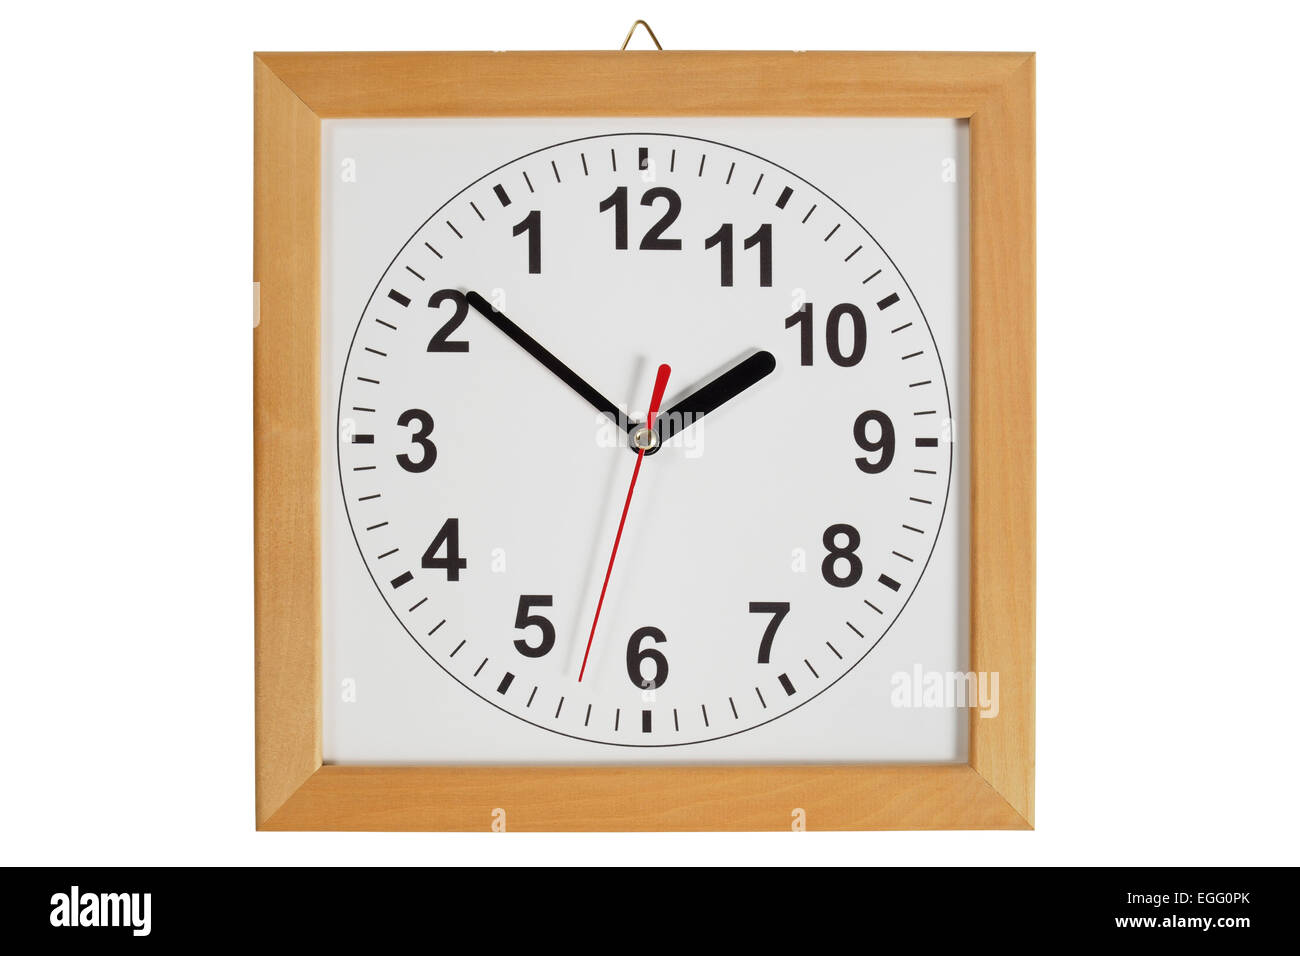 Reverse clock with wooden frame isolated on white background - Stock Image